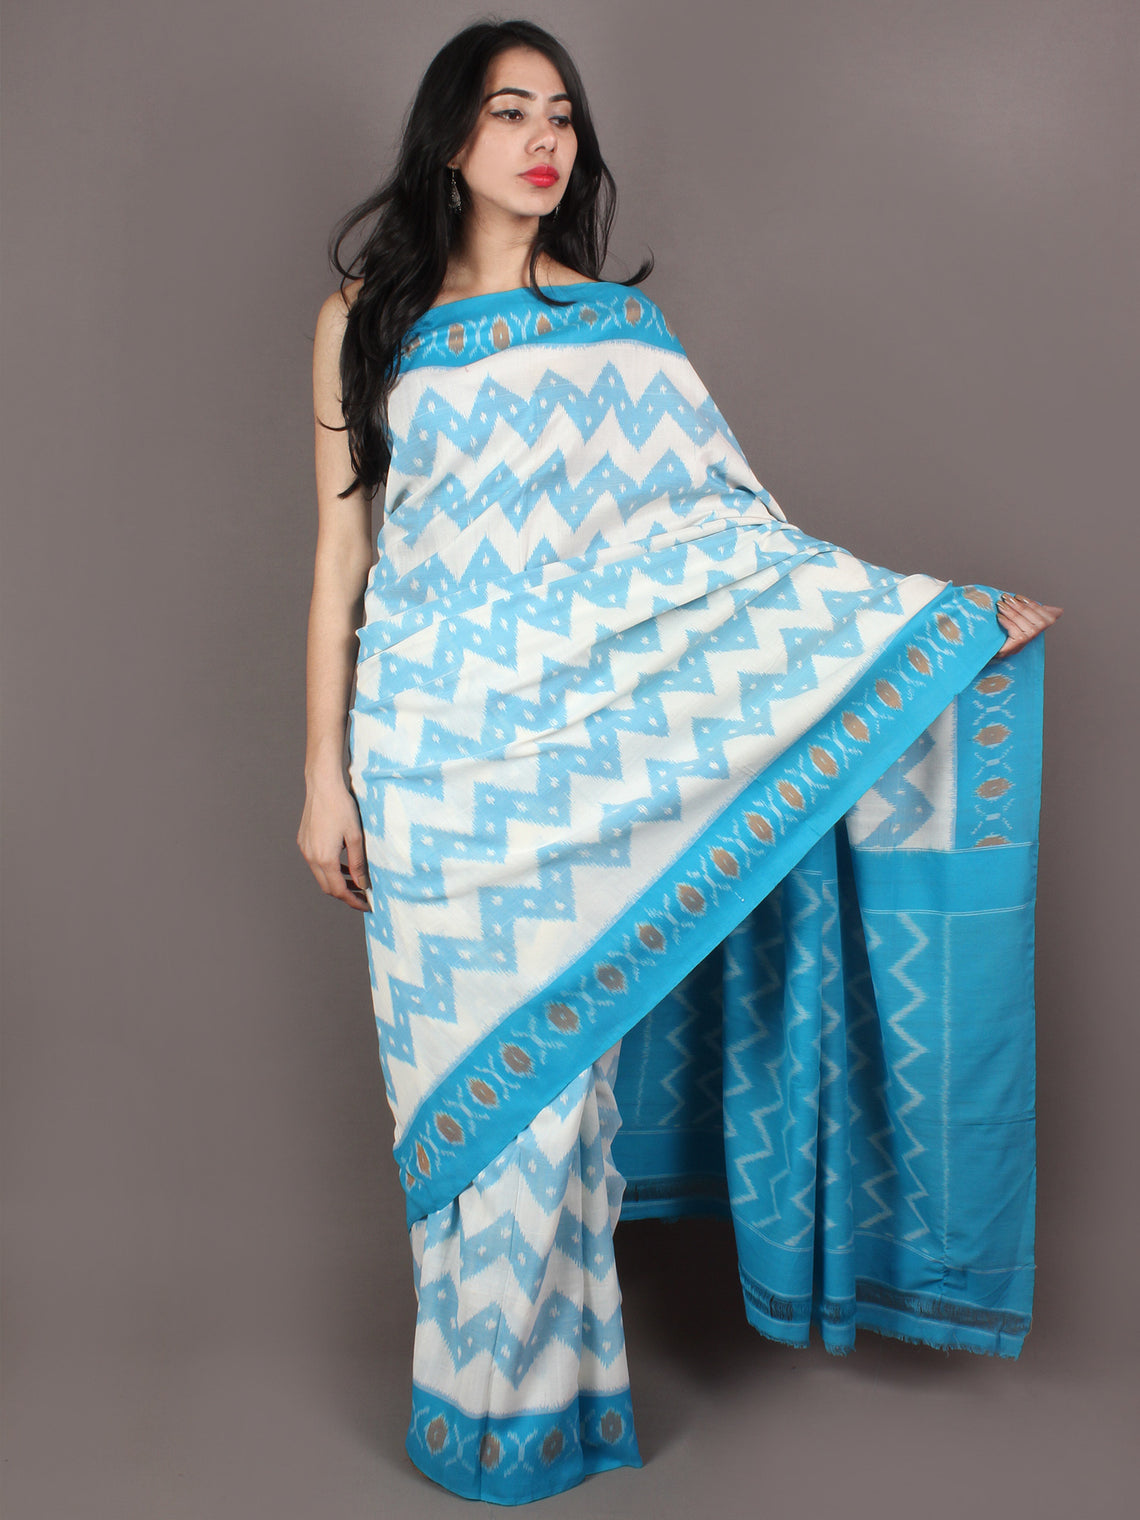 Azure Ivory Yellow Ikat Handwoven Pochampally Cotton Saree - S031701073